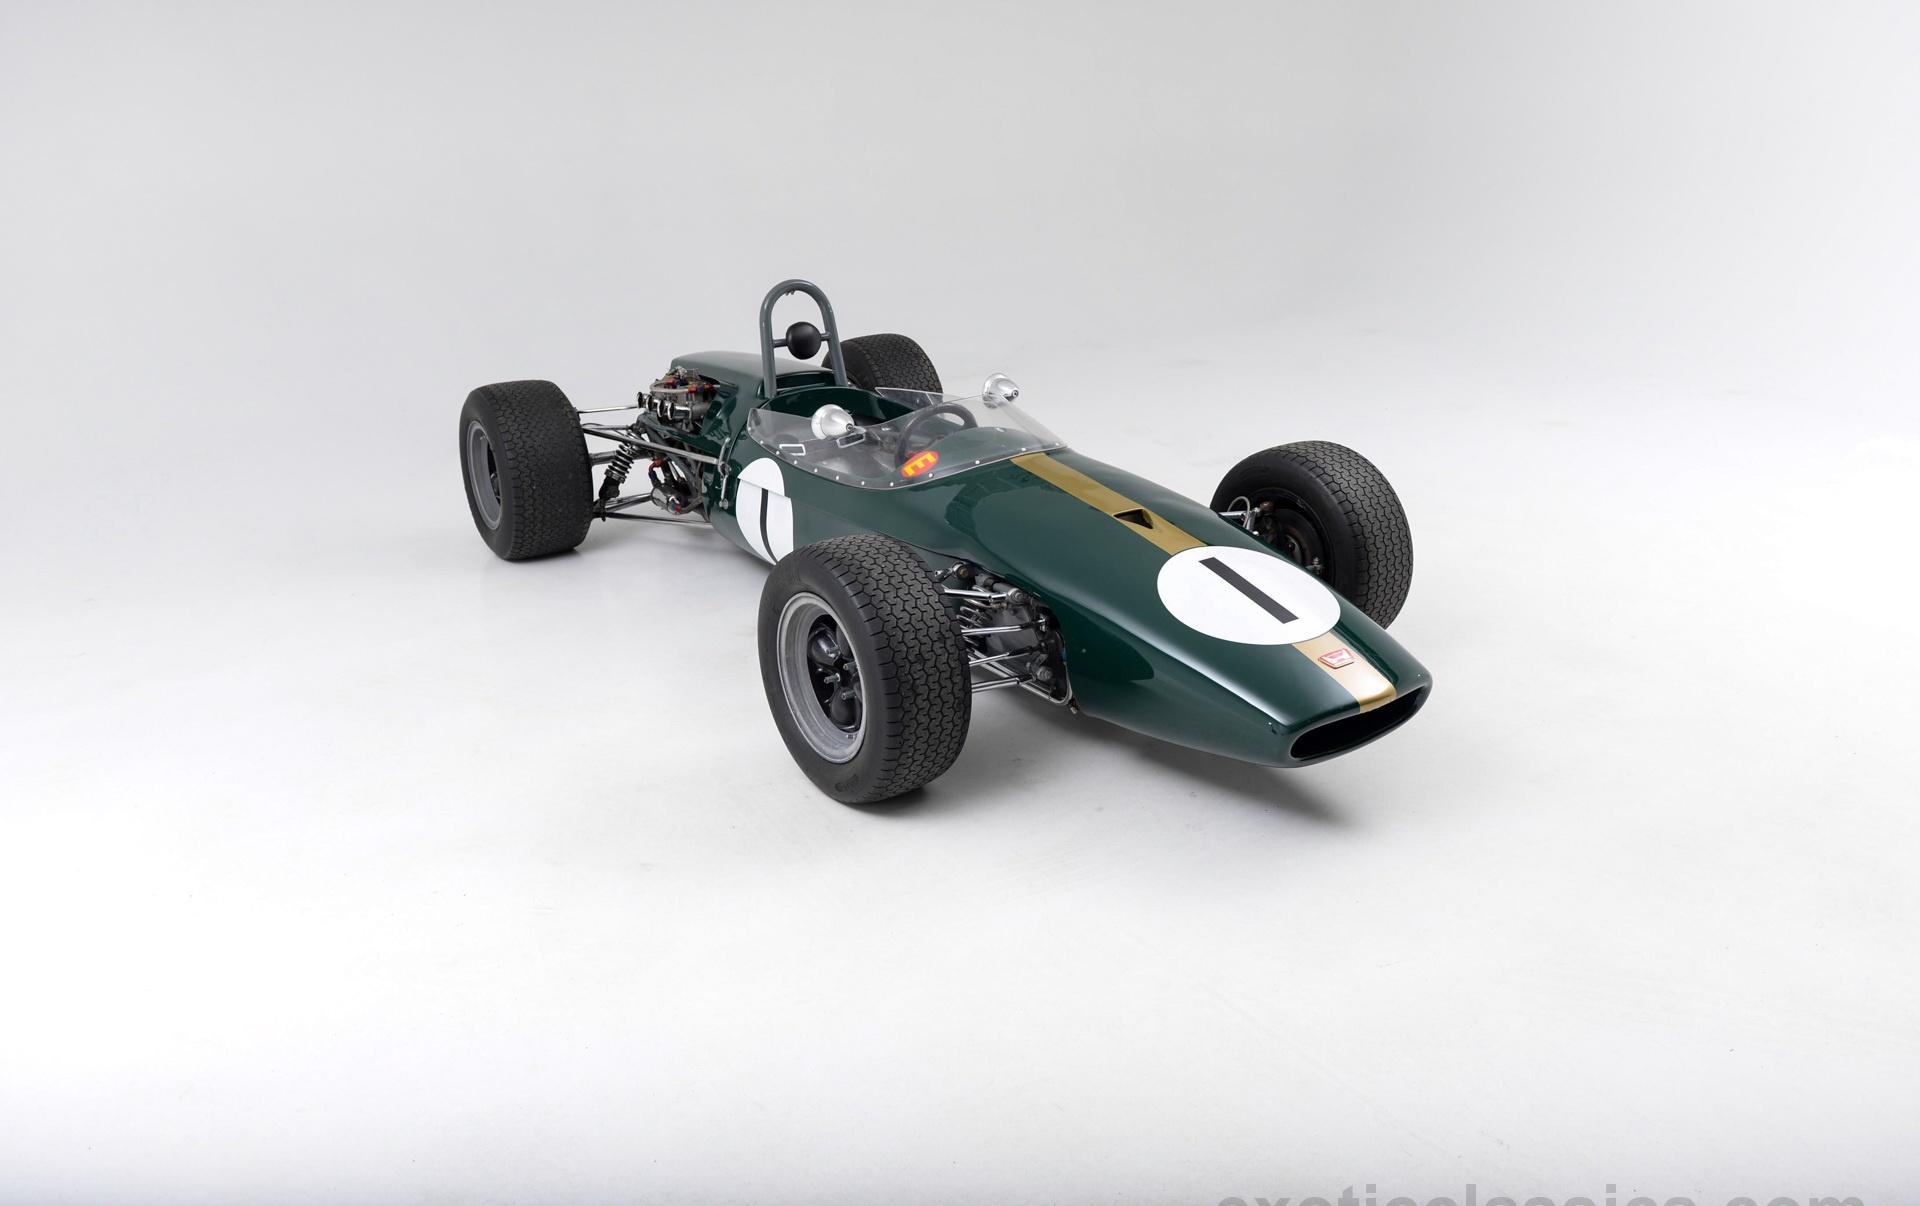 Perfection Honda Service >> 1966 Brabham/Honda BT18 - Champion Motors International l Luxury Classic Vehicle Dealership New ...